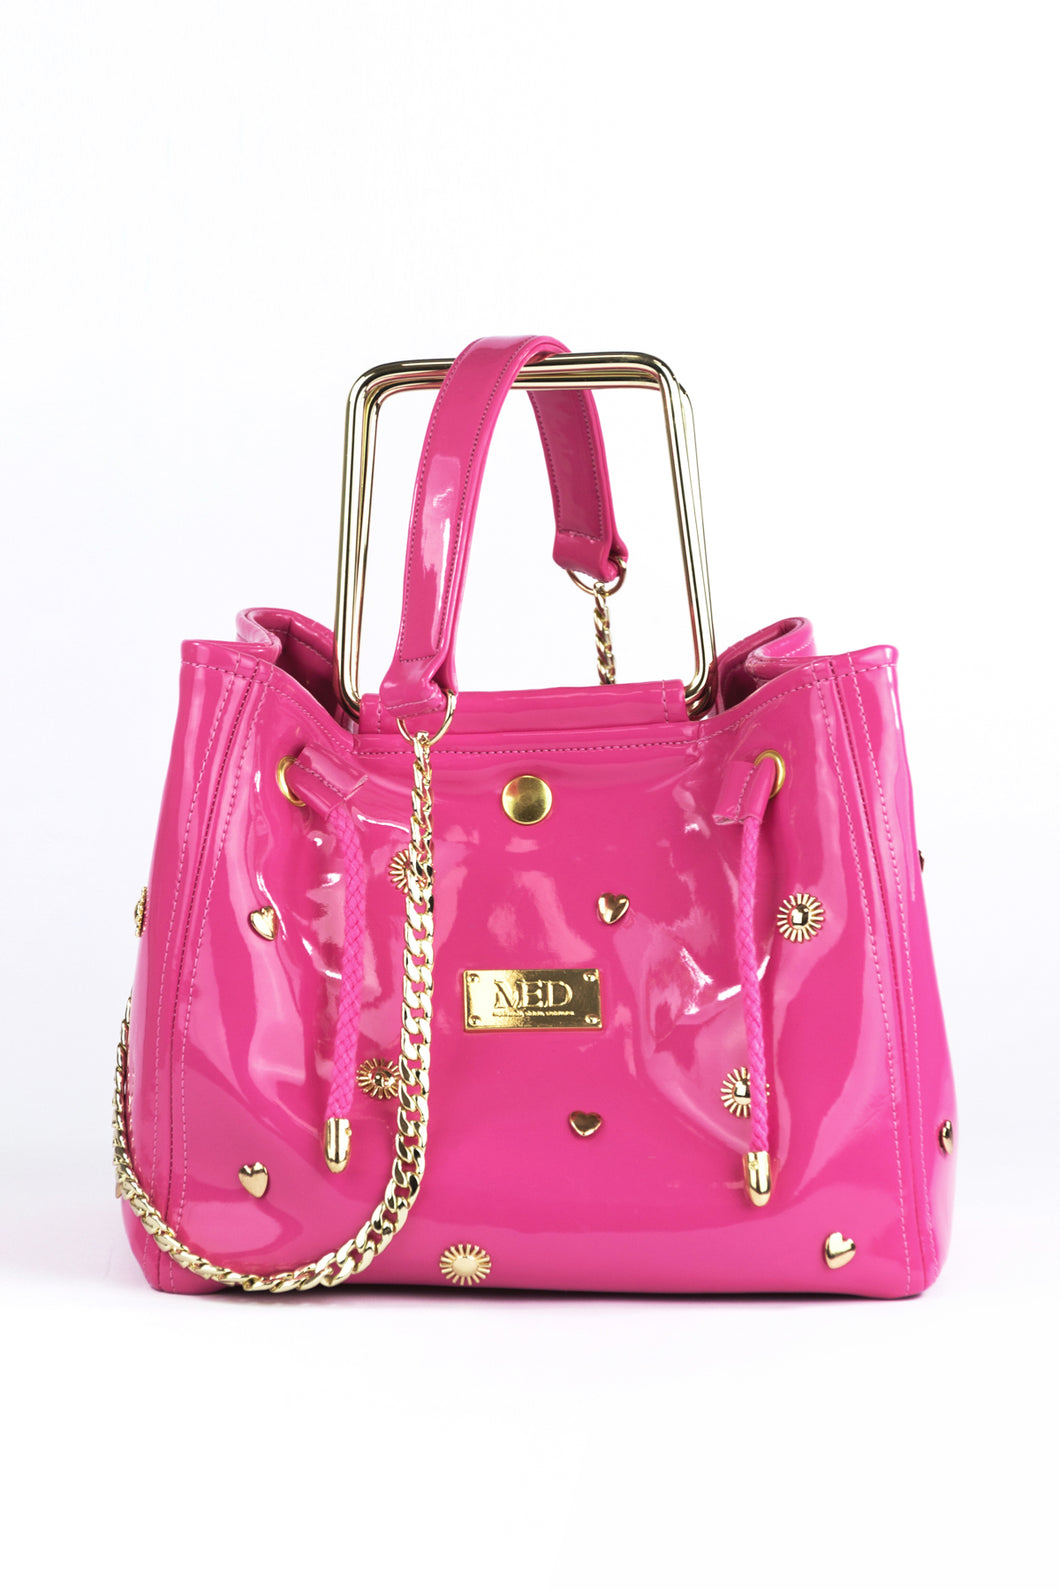 Box Bag in vegan Patent Leather - pink